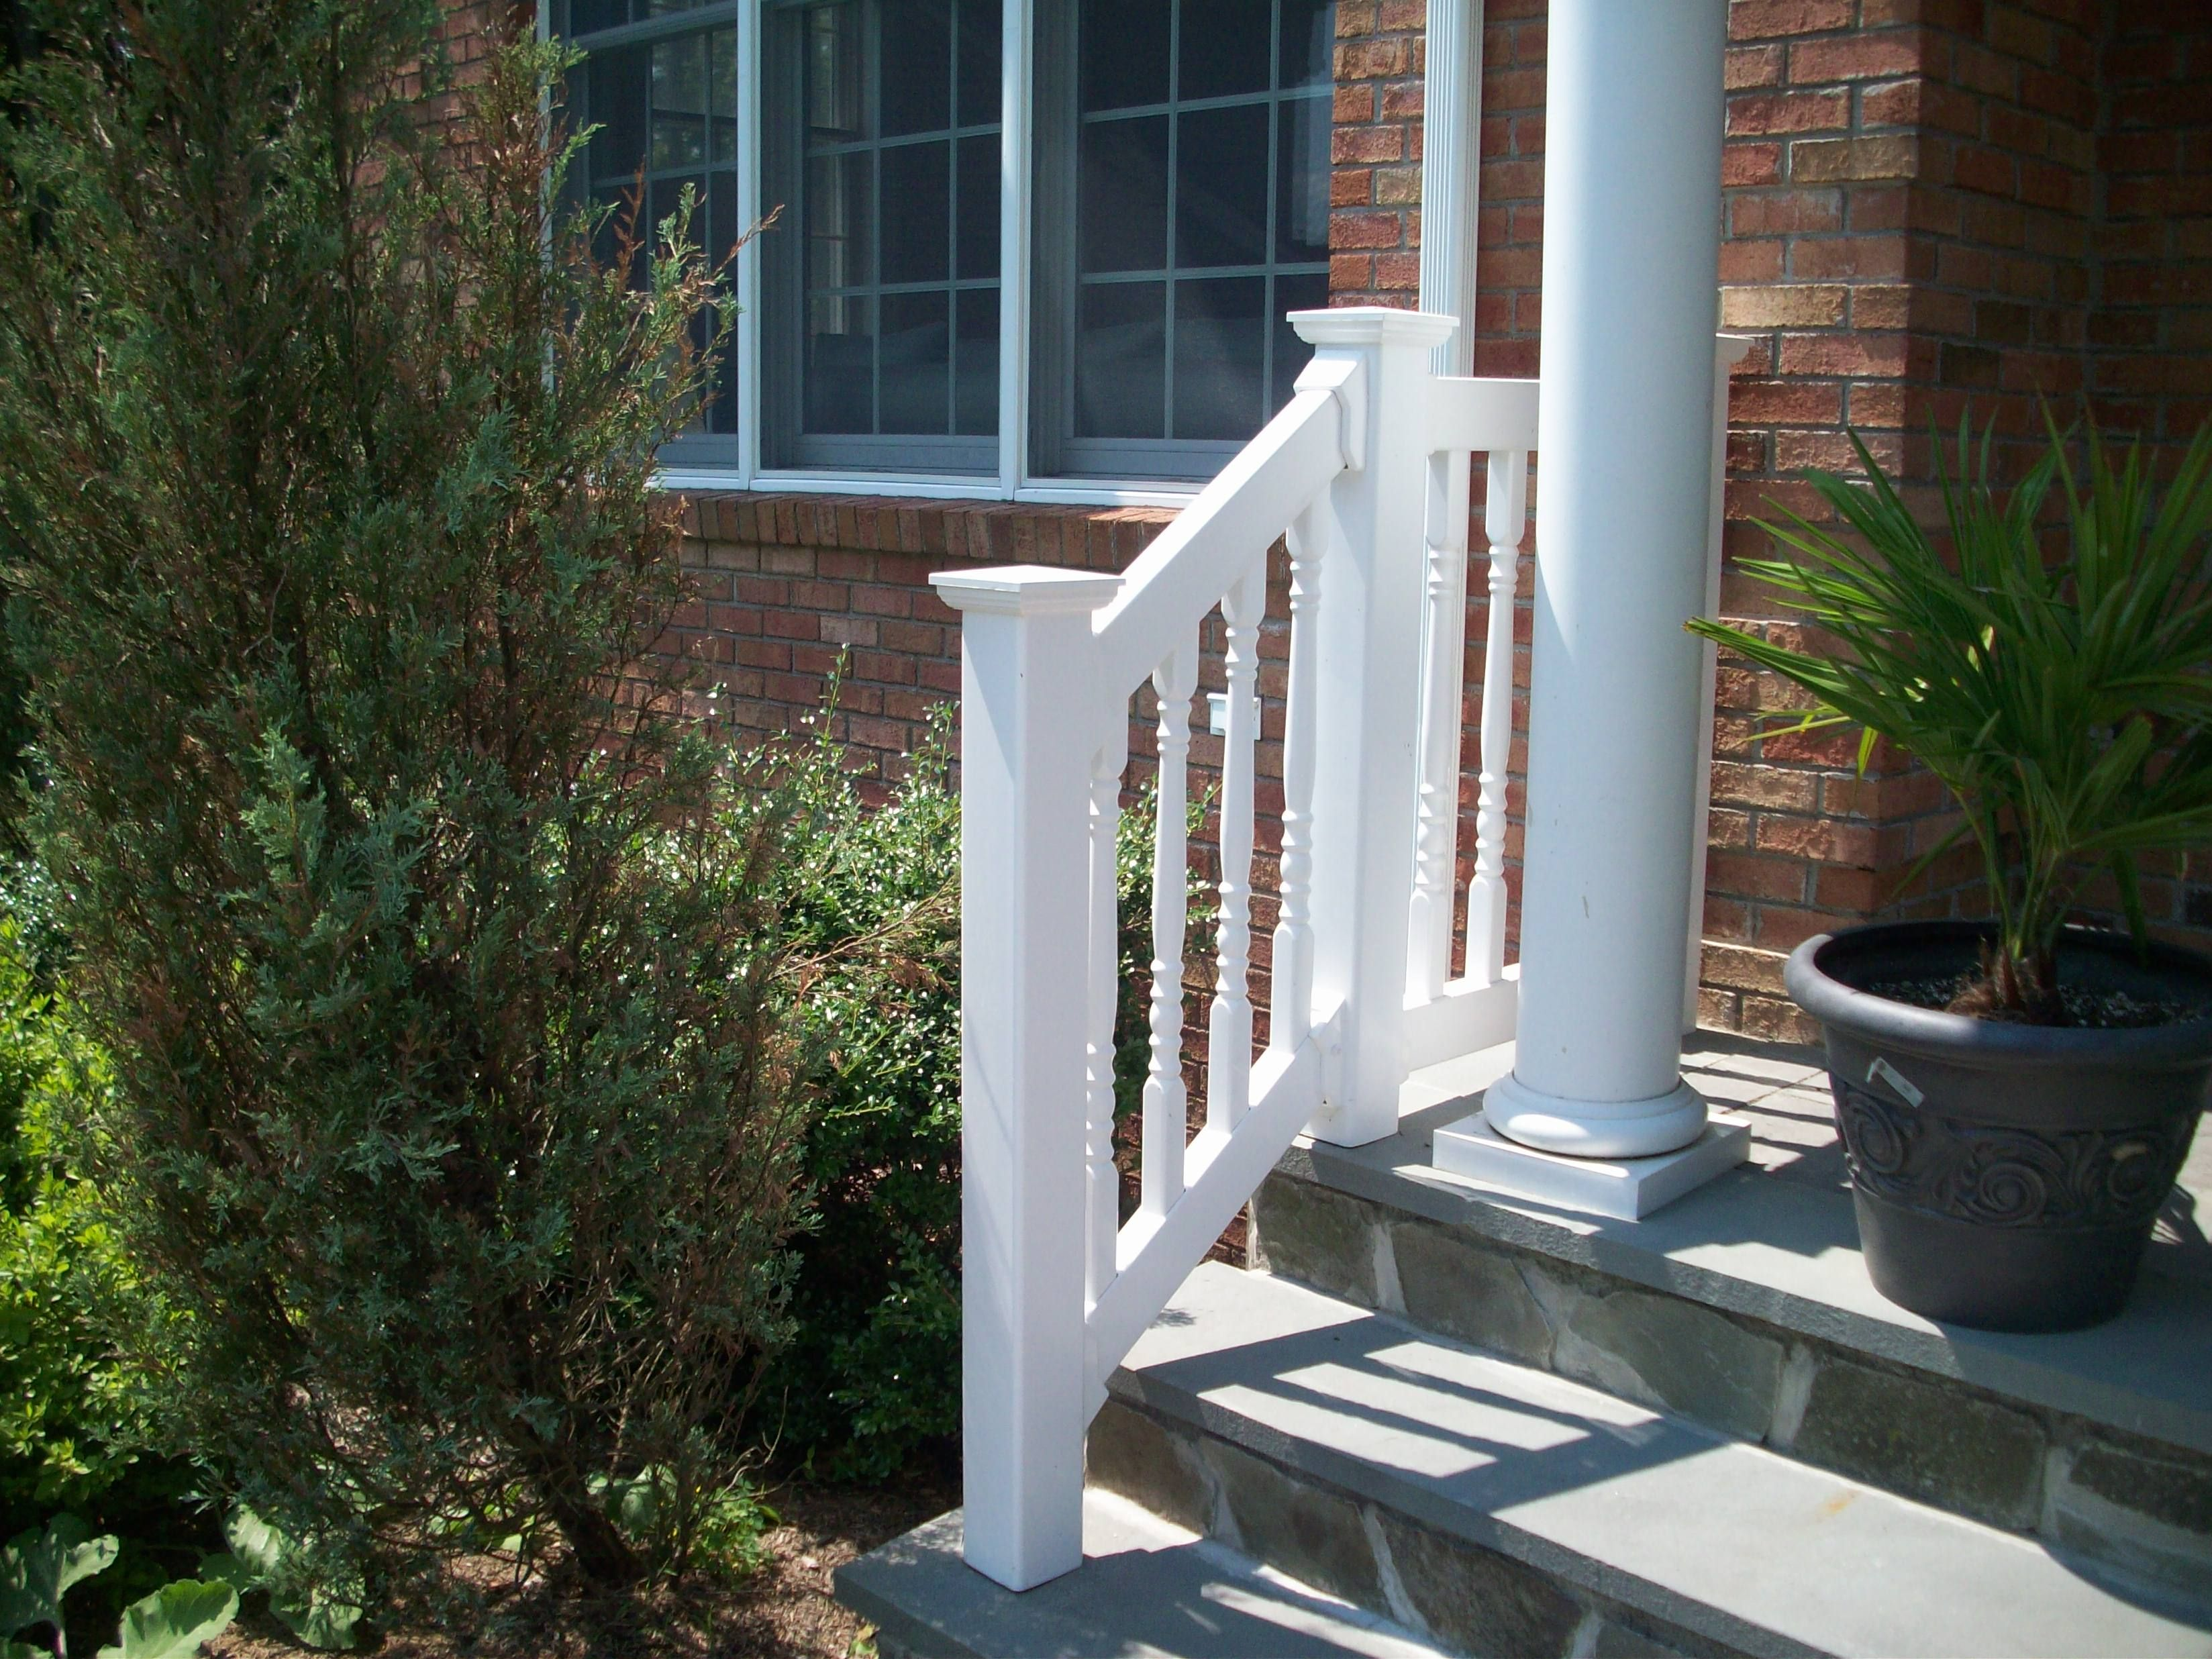 Fence Company New York Fence Supplies Fencing Companies